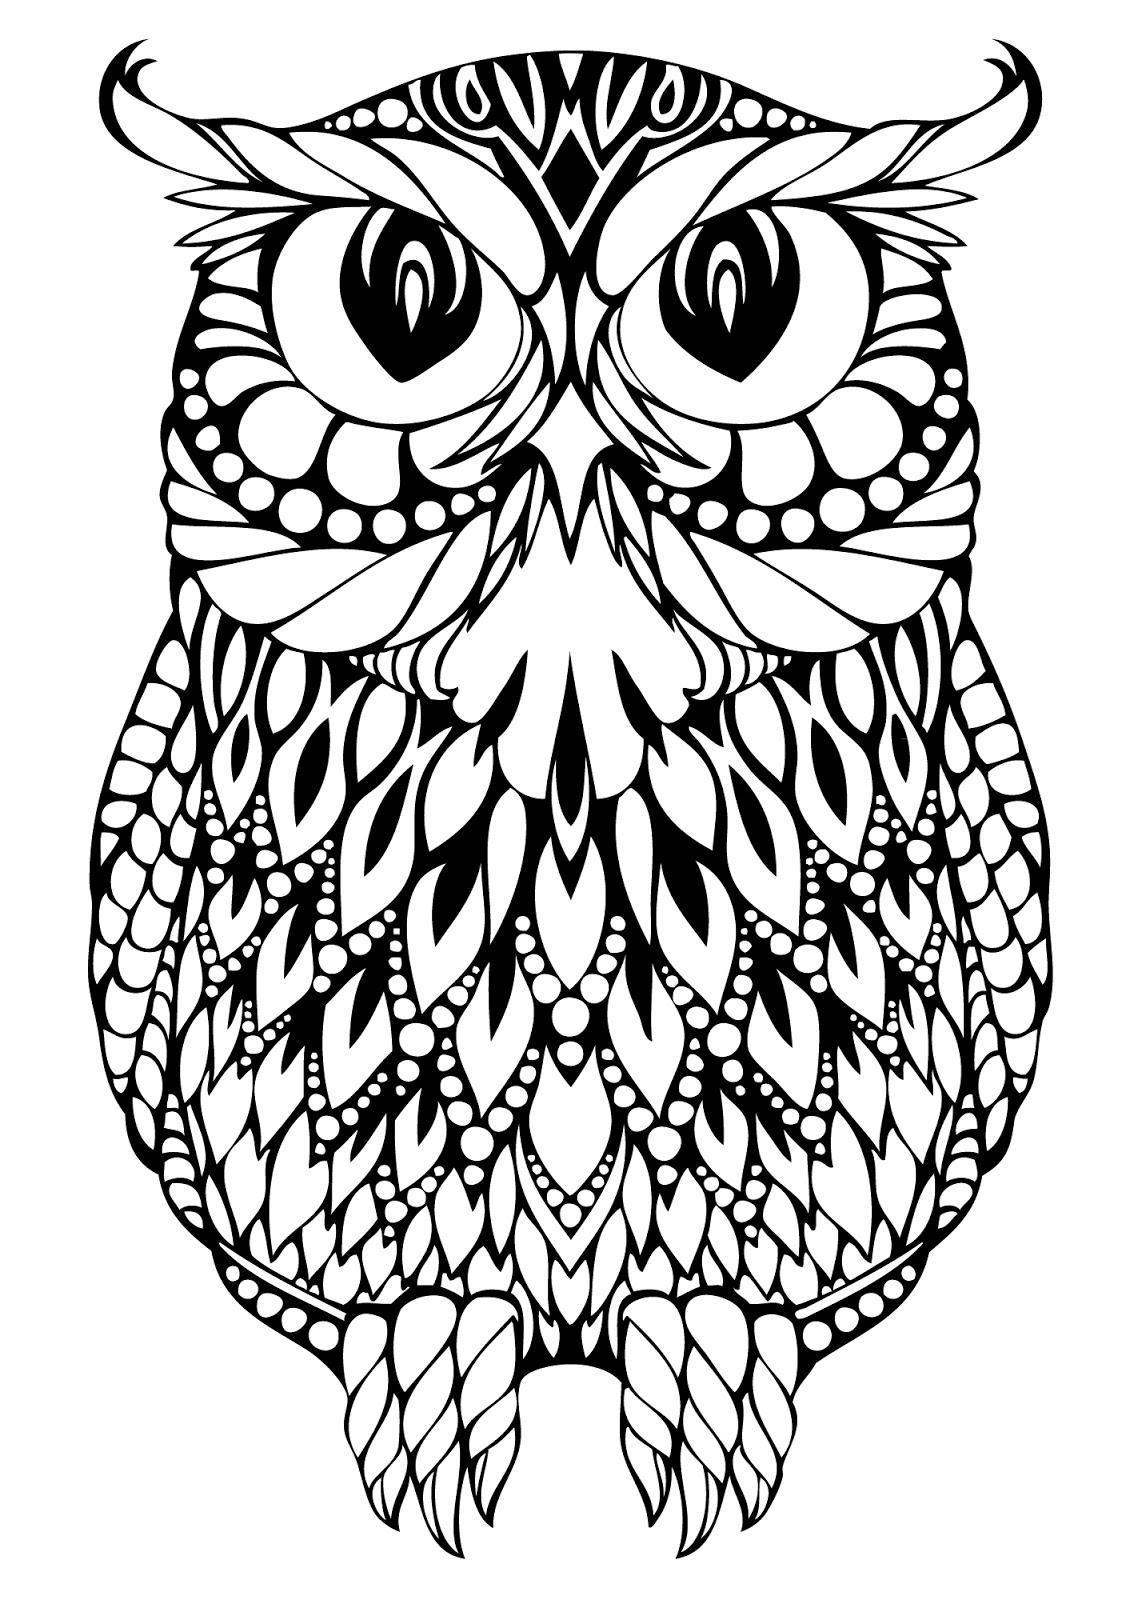 cool kids coloring pages cool coloring pages elementary kids coloring home coloring cool kids pages